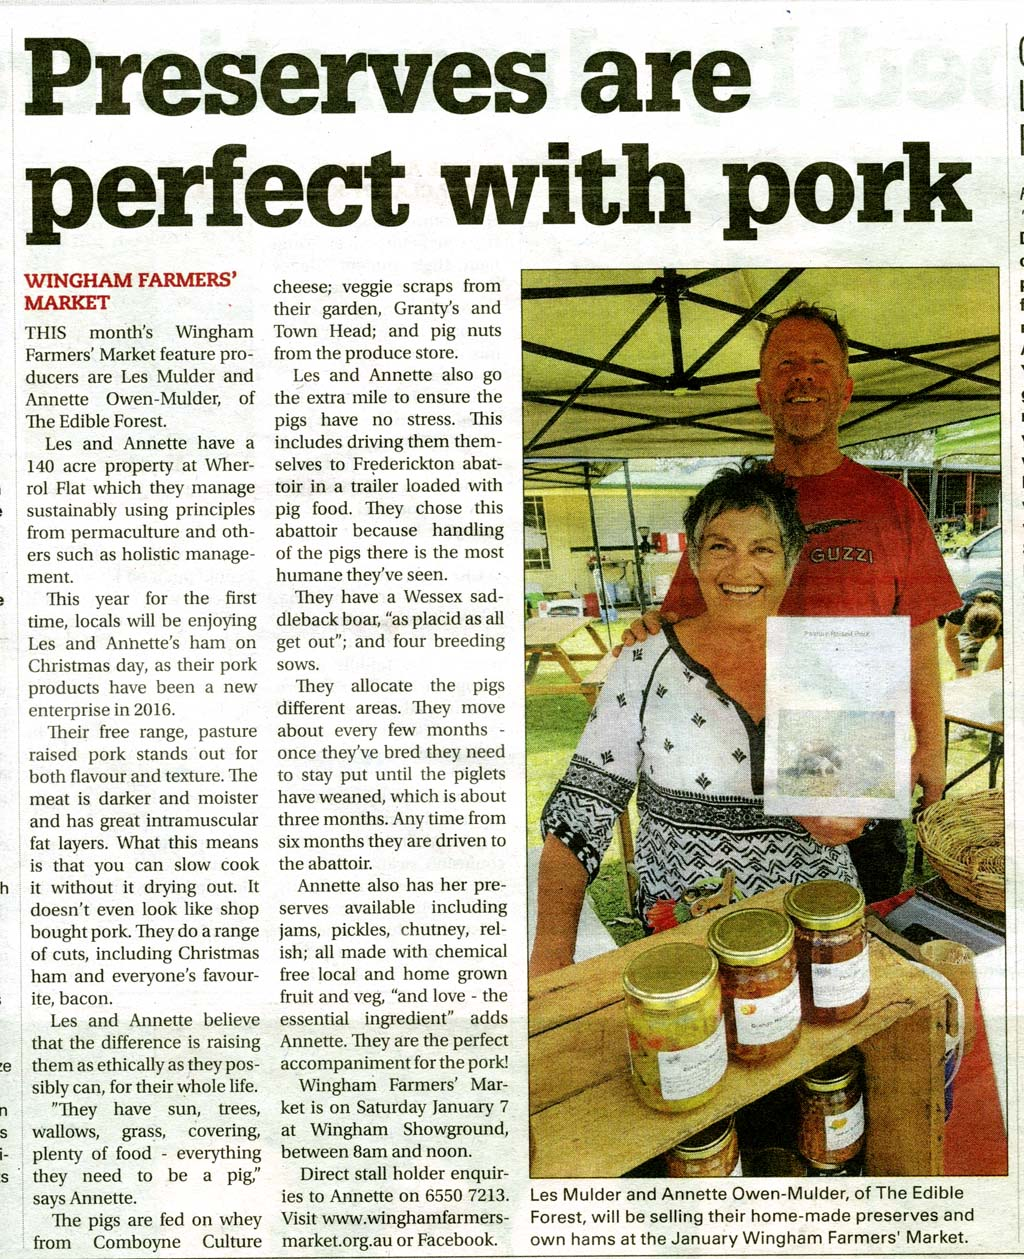 """This month's Wingham Farmers' Market feature producers are Les Mulder and Annette Owen-Mulder of The Edible Forest. Les and Annette have a 140 acre property at Wherrol Flat which they manage sustainably using principles from permaculture and others such as holistic management. This year for the first time, savvy locals will be enjoying Les and Annette's ham on Christmas day, as their pork products have been a new enterprise in 2016. Their free range, pasture raised pork stands out for both flavour and texture. The meat is darker and moister and has great intramuscular fat layers. What this means is that you can slow cook it without it drying out. It doesn't even look like shop bought pork. They do a range of cuts, including Christmas ham and everyone's favourite, bacon. Les and Annette believe that the difference is raising them as ethically as they possibly can, for their whole life. """"They have sun, trees, wallows, grass, covering, plenty of food - everything they need to be a pig"""" says Annette. The pigs are fed on whey from Comboyne Culture cheese; veggie scraps from their garden, Granty's and Town Head; and pig nuts from the produce store. Les and Annette also go the extra mile to ensure the pigs have no stress. This includes driving them themselves to Frederickton abattoir in a trailer loaded with pig food. They chose this abattoir because handling of the pigs there is the most humane they've seen. They have a Wessex saddleback boar, """"as placid as all get out""""; and four breeding sows. There is Brunhilda, a Berkshire x large white; Esmerelda and Bludwin, Wessex Saddleback x large white x Berkshire; and Ladybird, a Duroc. They allocate the pigs different areas. They move about every few months - once they've bred they need to stay put until the piglets have weaned, which is about three months. Any time from six months they are driven to the abattoir. Annette also has her preserves available including jams, pickles, chutney, relish; all made with chemical free loca"""